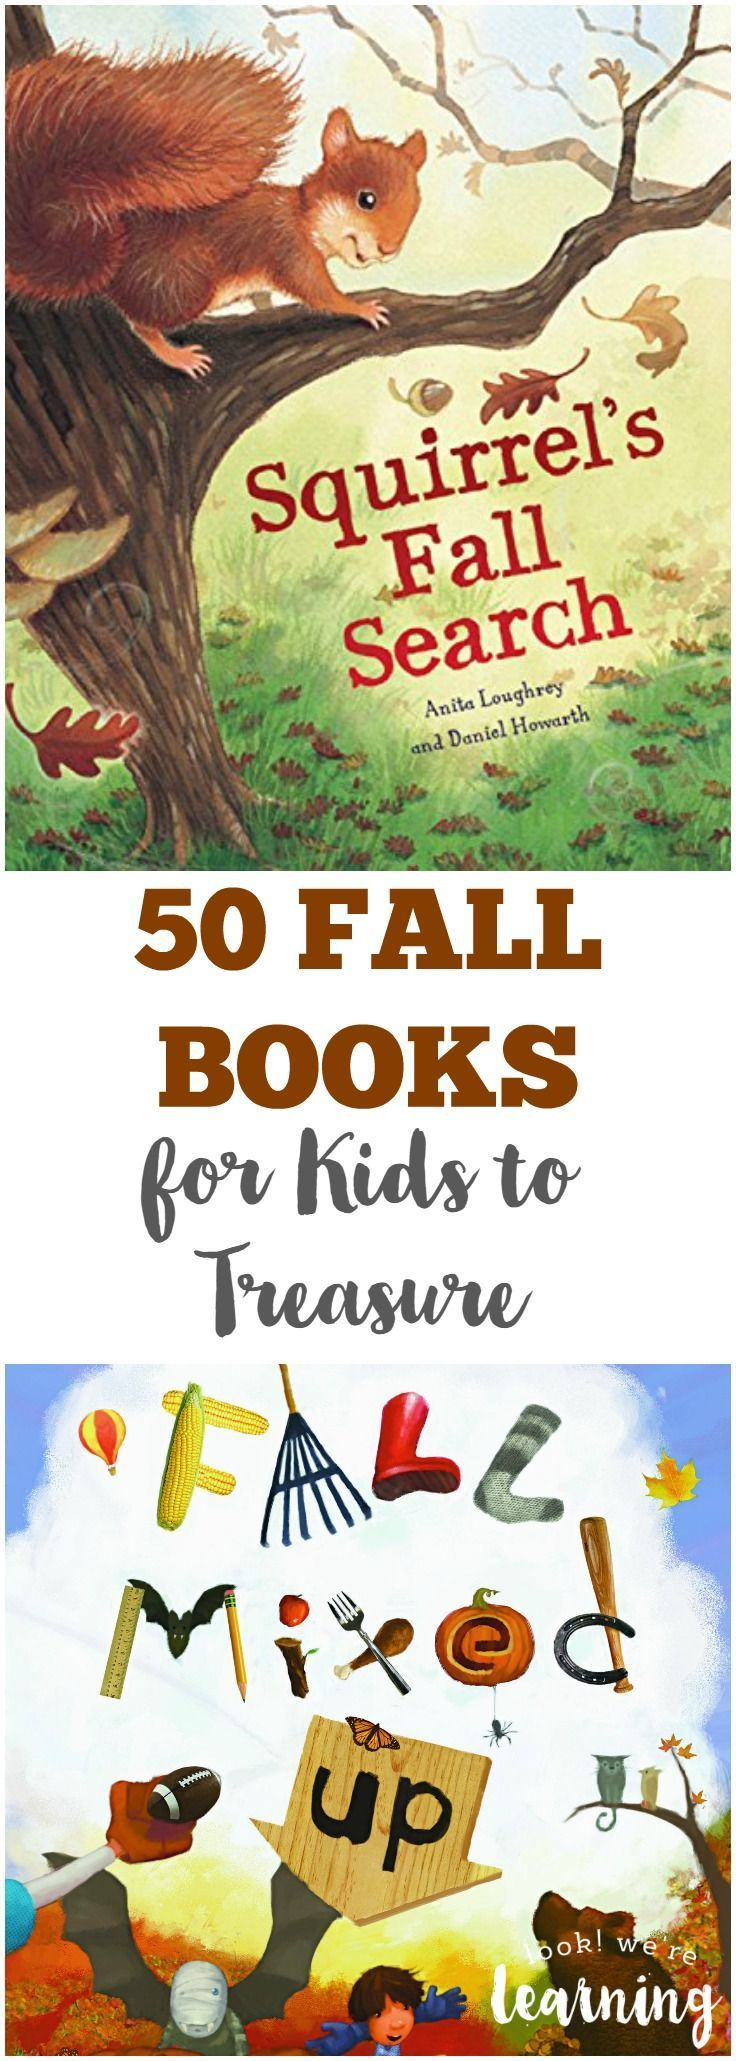 Get ready for autumn with these beautiful fall books for kids to treasure! Find a new family classic or two on this book list!